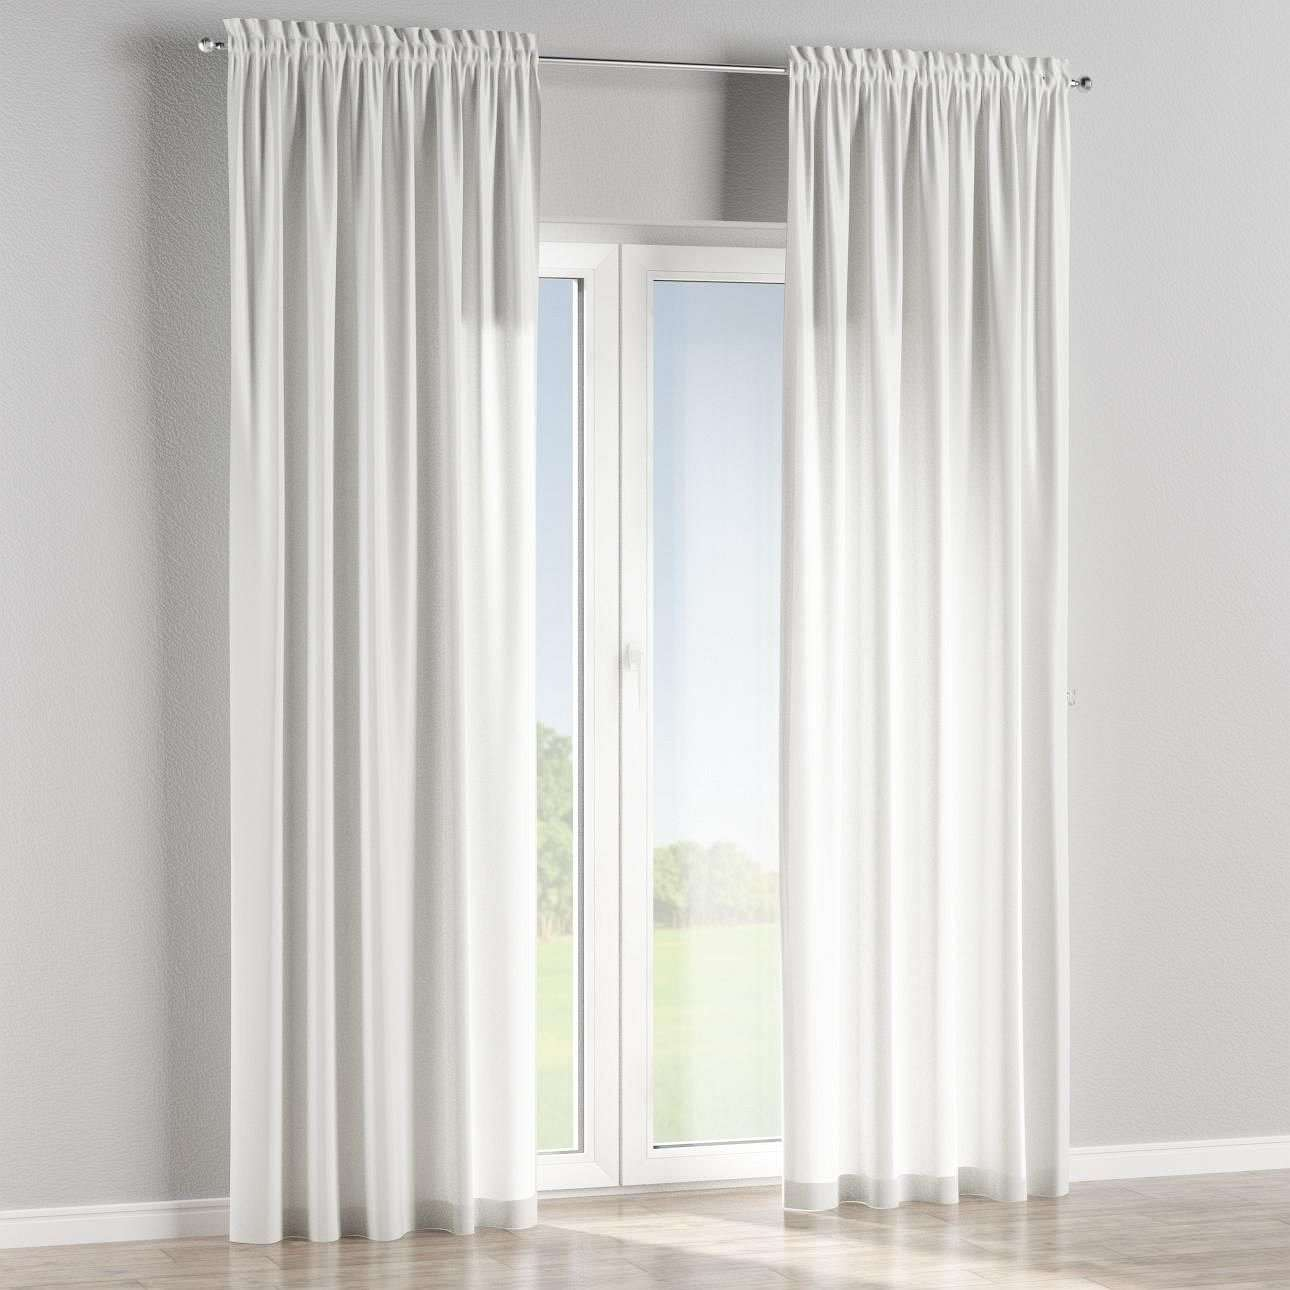 Slot and frill lined curtains in collection Londres, fabric: 122-08